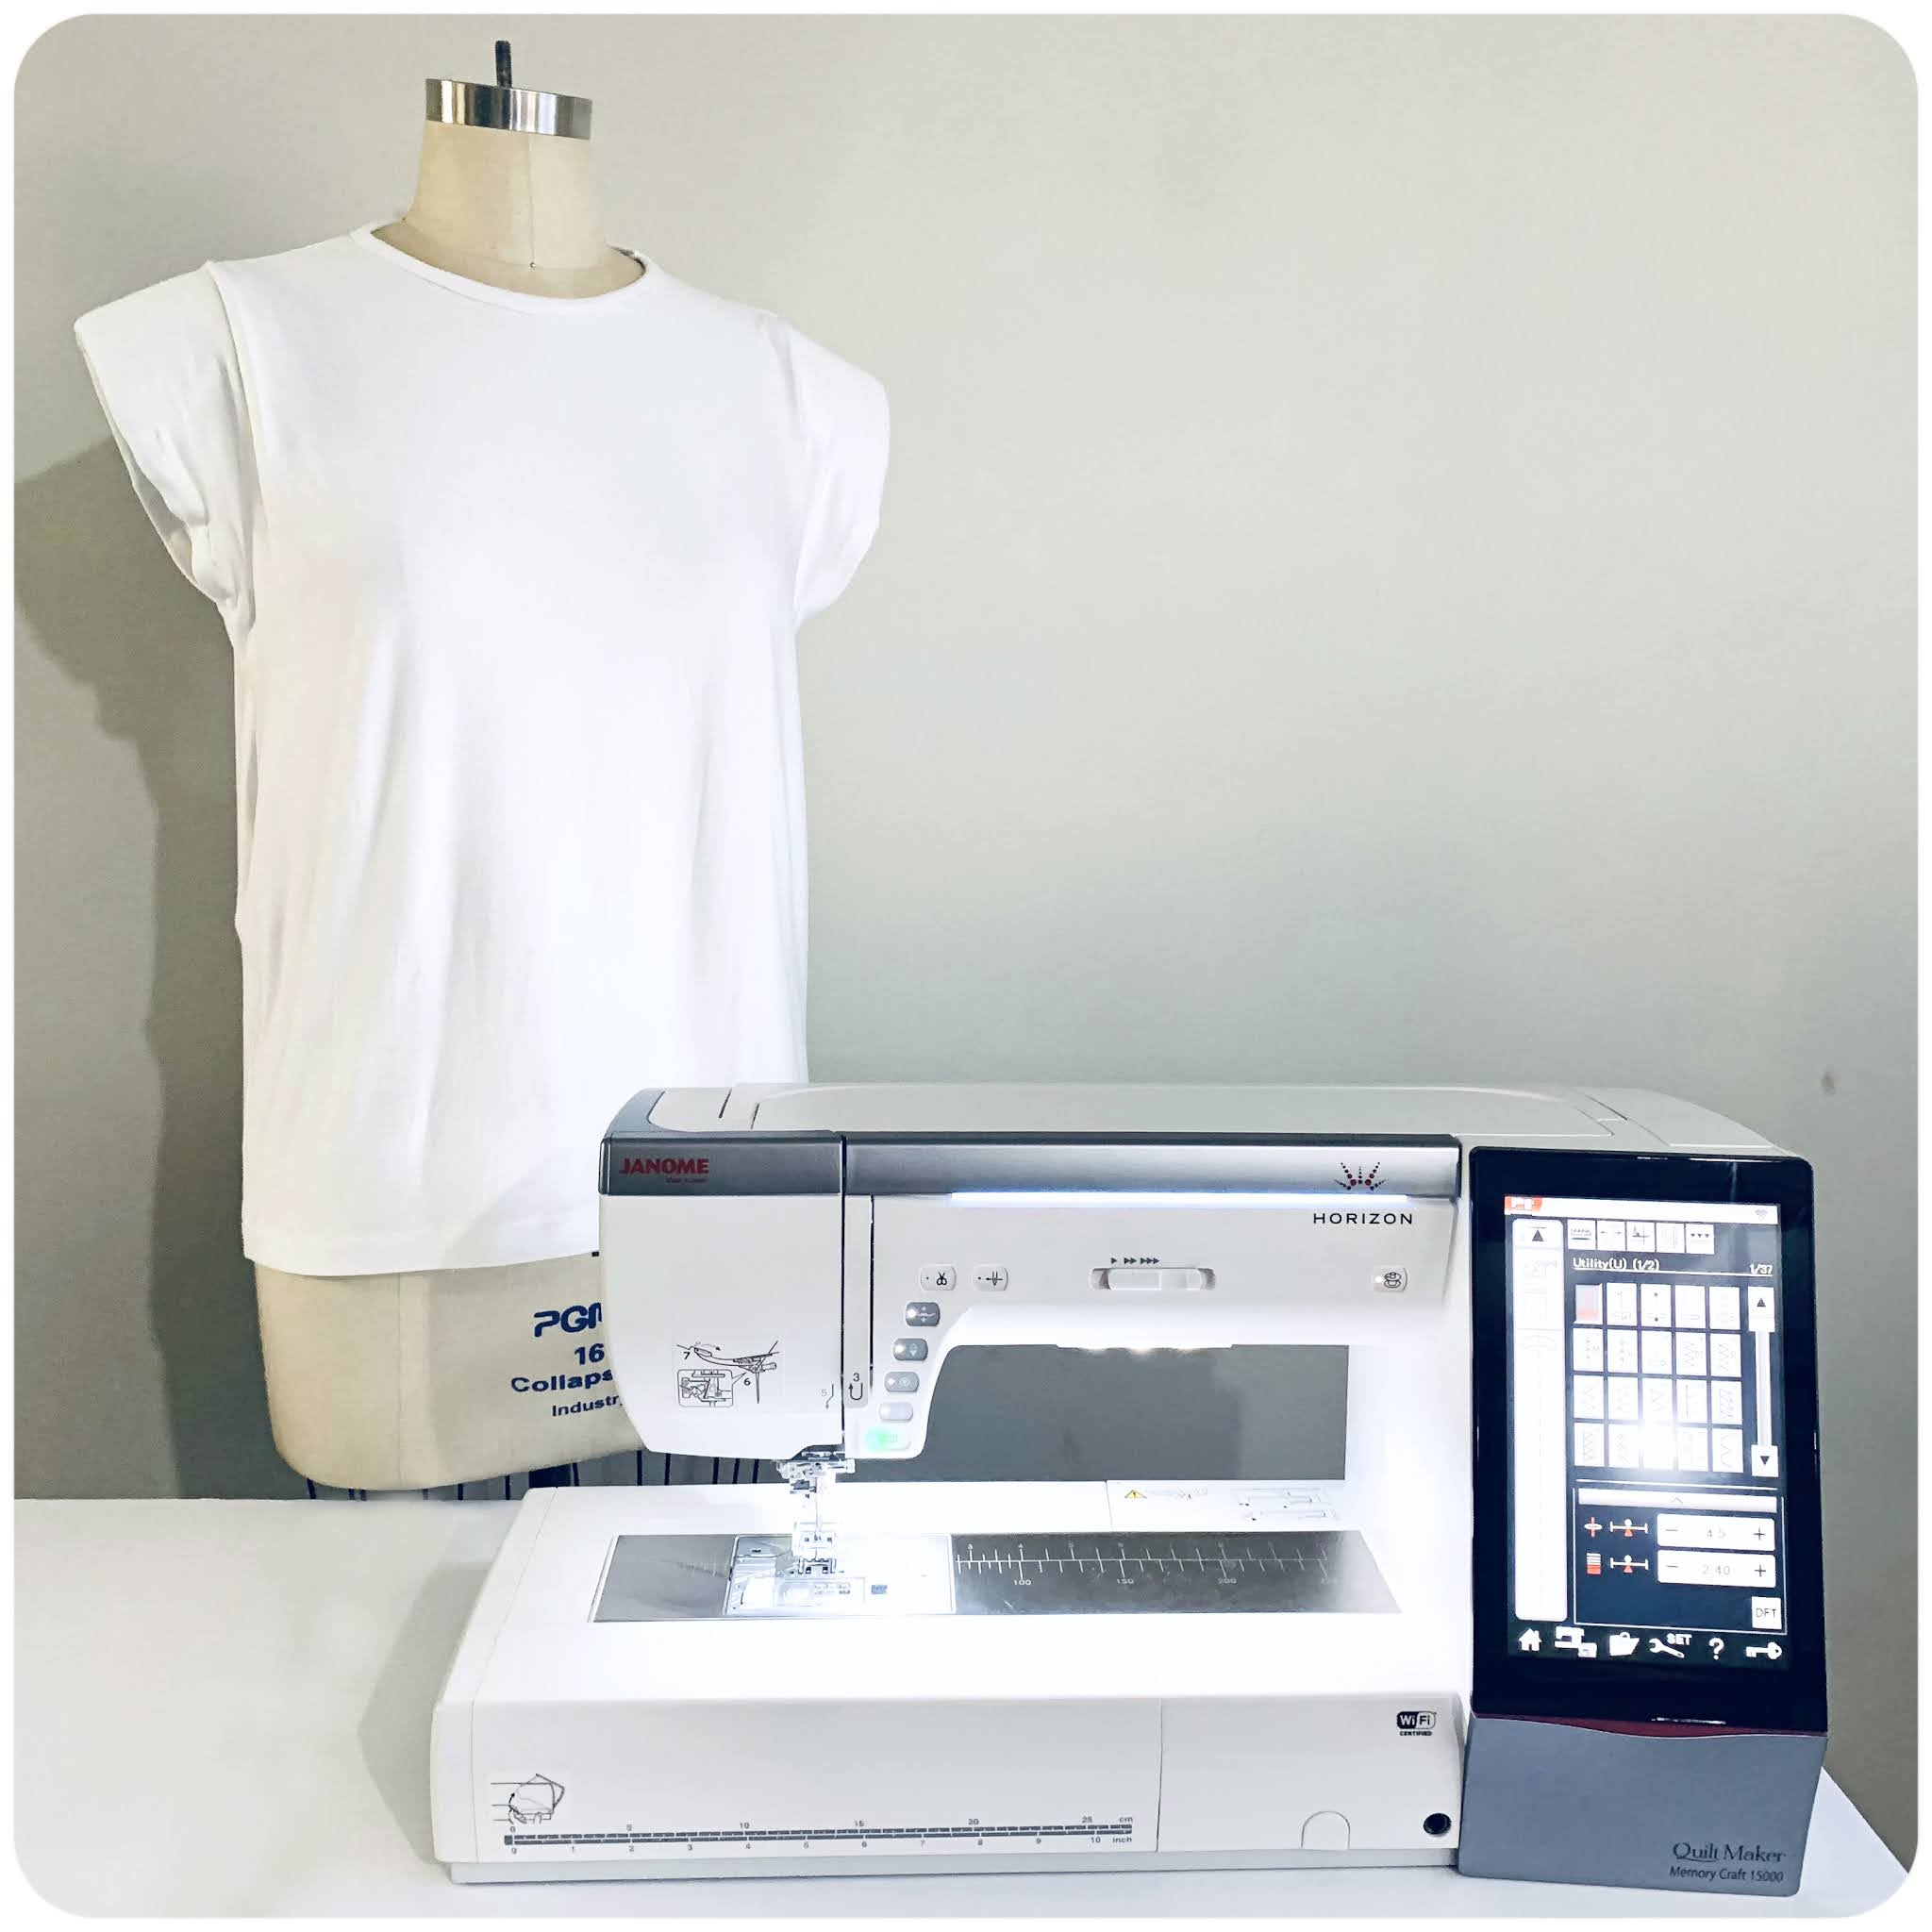 Sewing Knits on Janome Memory Craft 15000, while creating a trendy padded shoulder t-shirt -- Erica Bunker DIY Style!